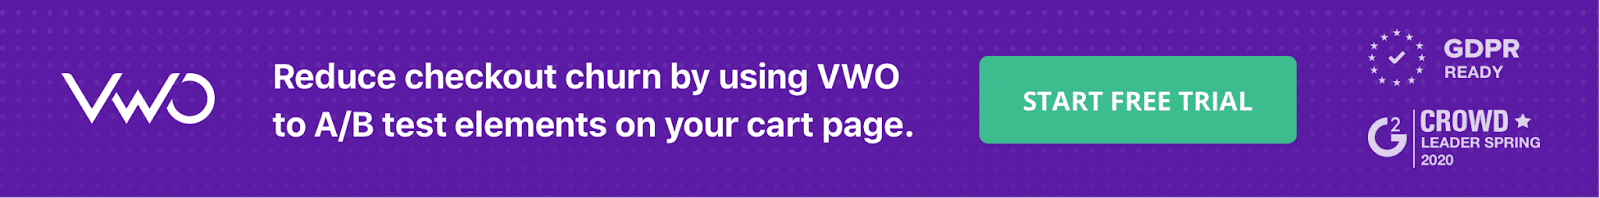 Reduce Checkout Churn with VWO